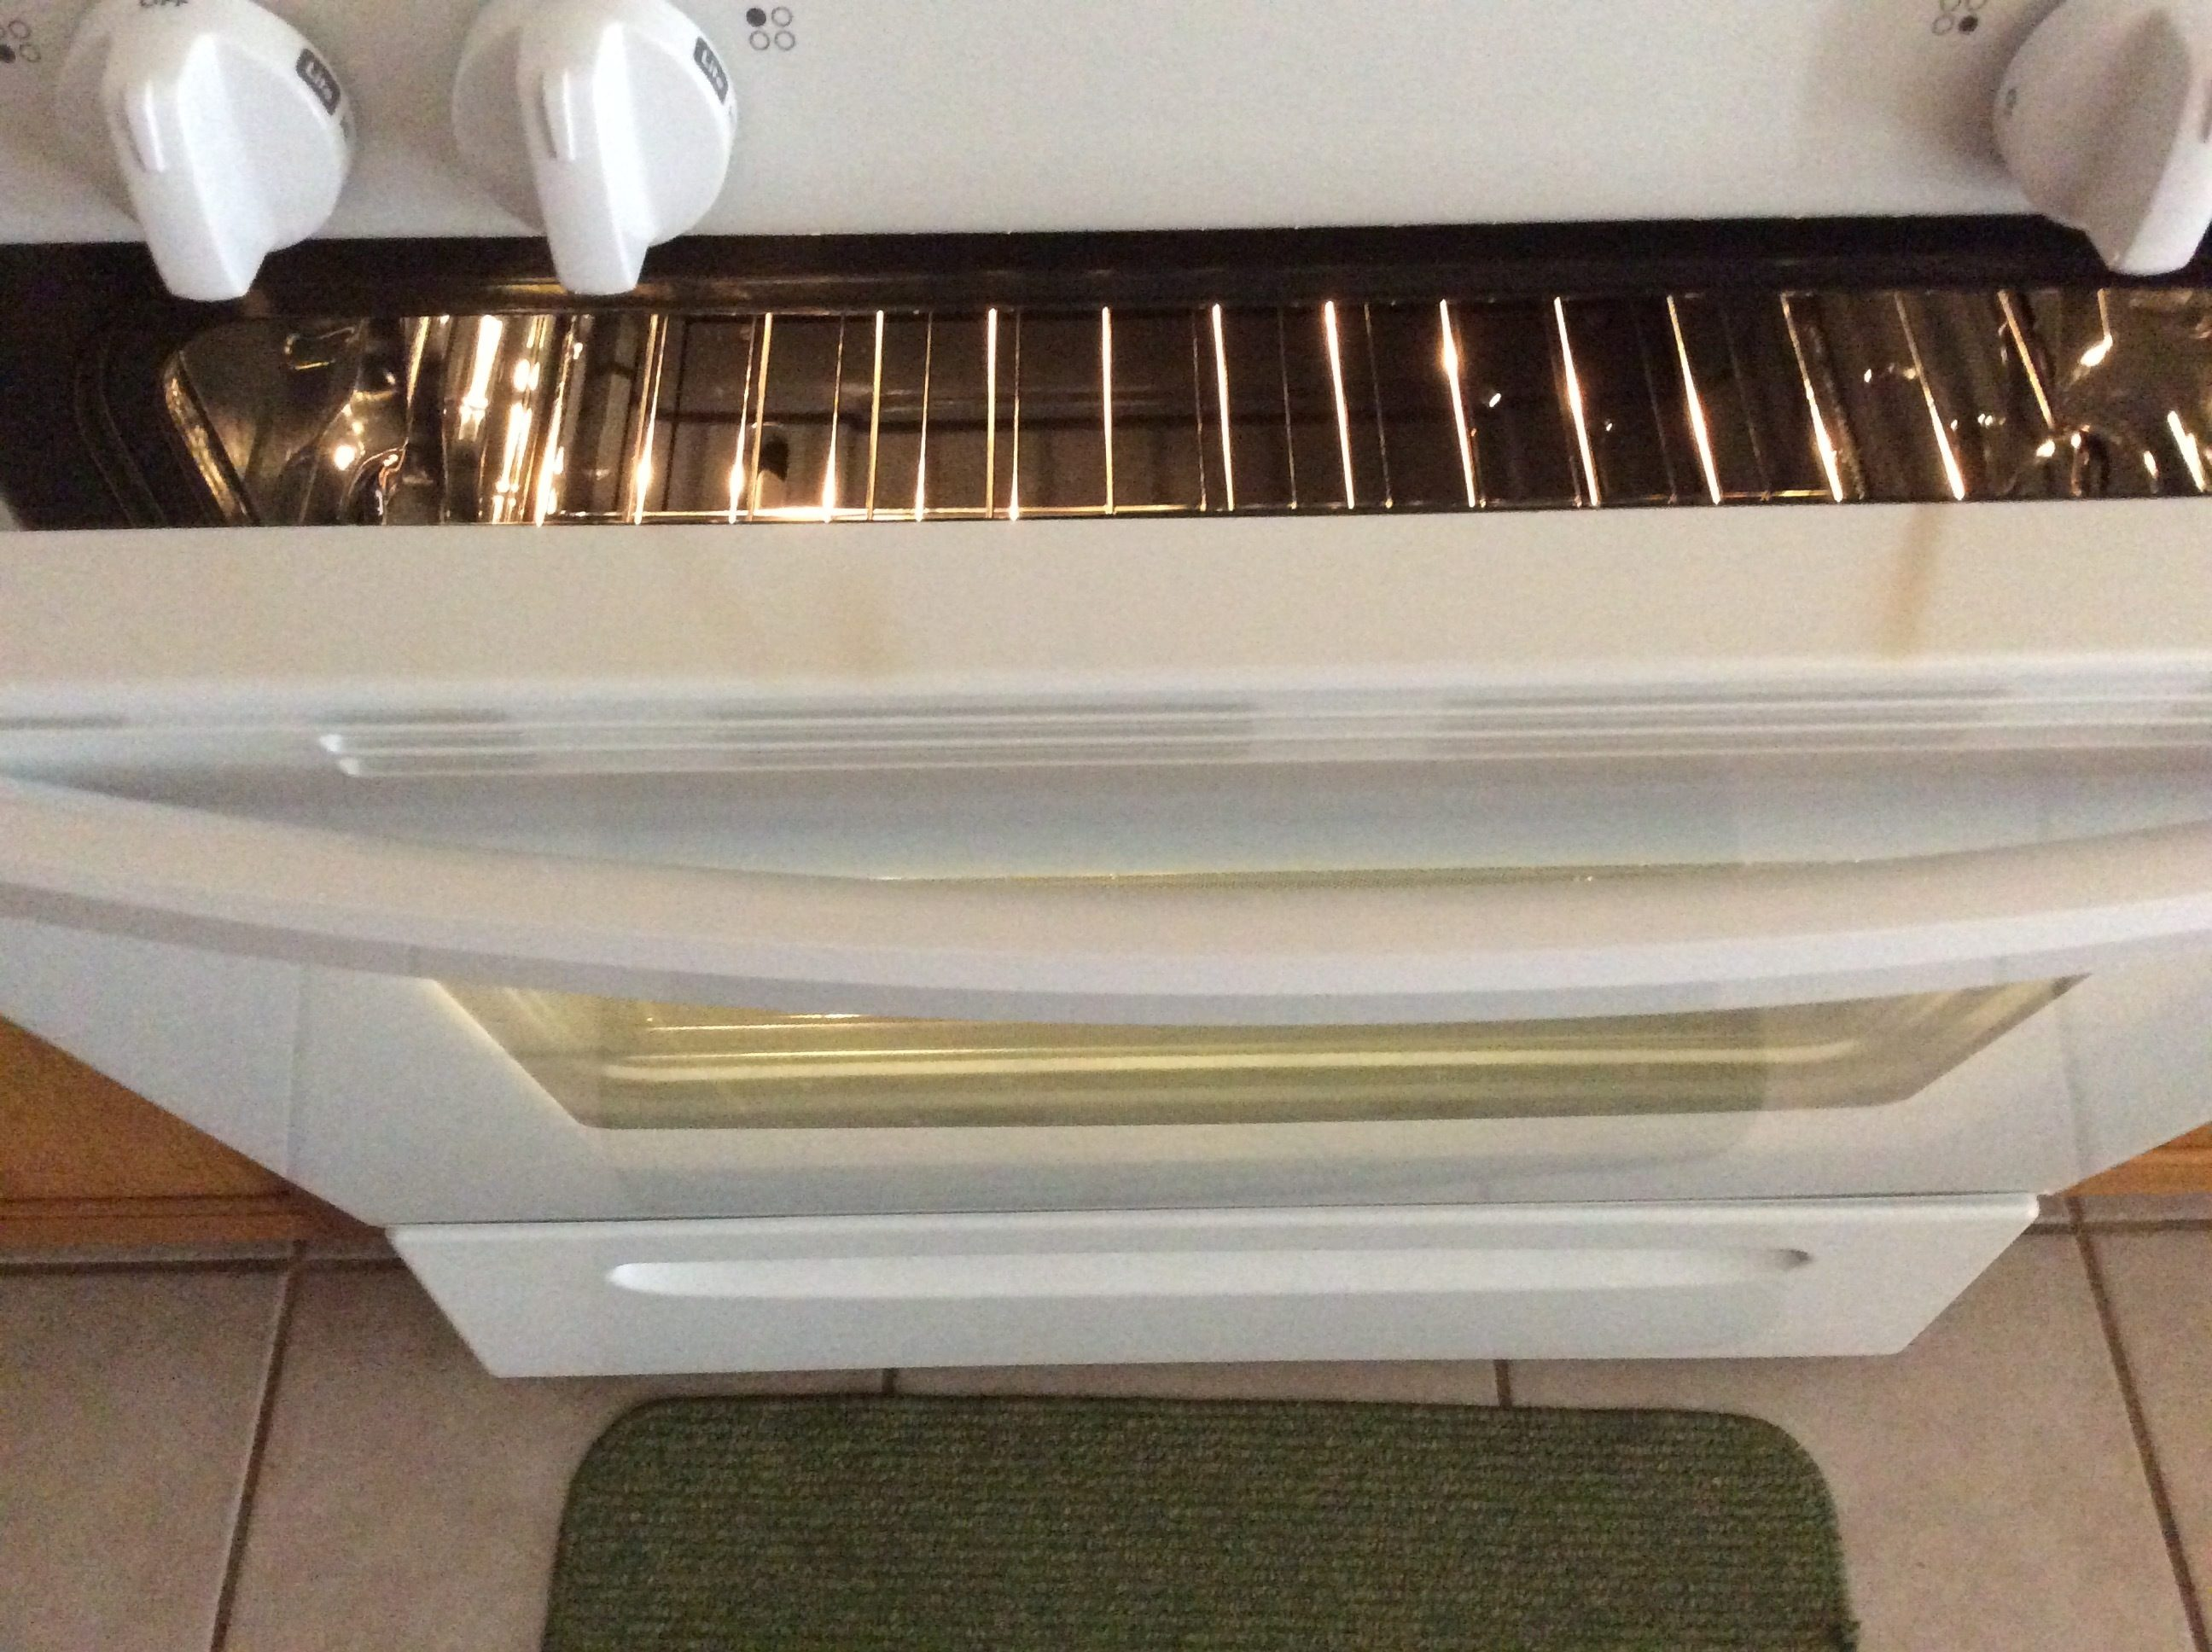 Top 410 Complaints And Reviews About Kenmore Ovens